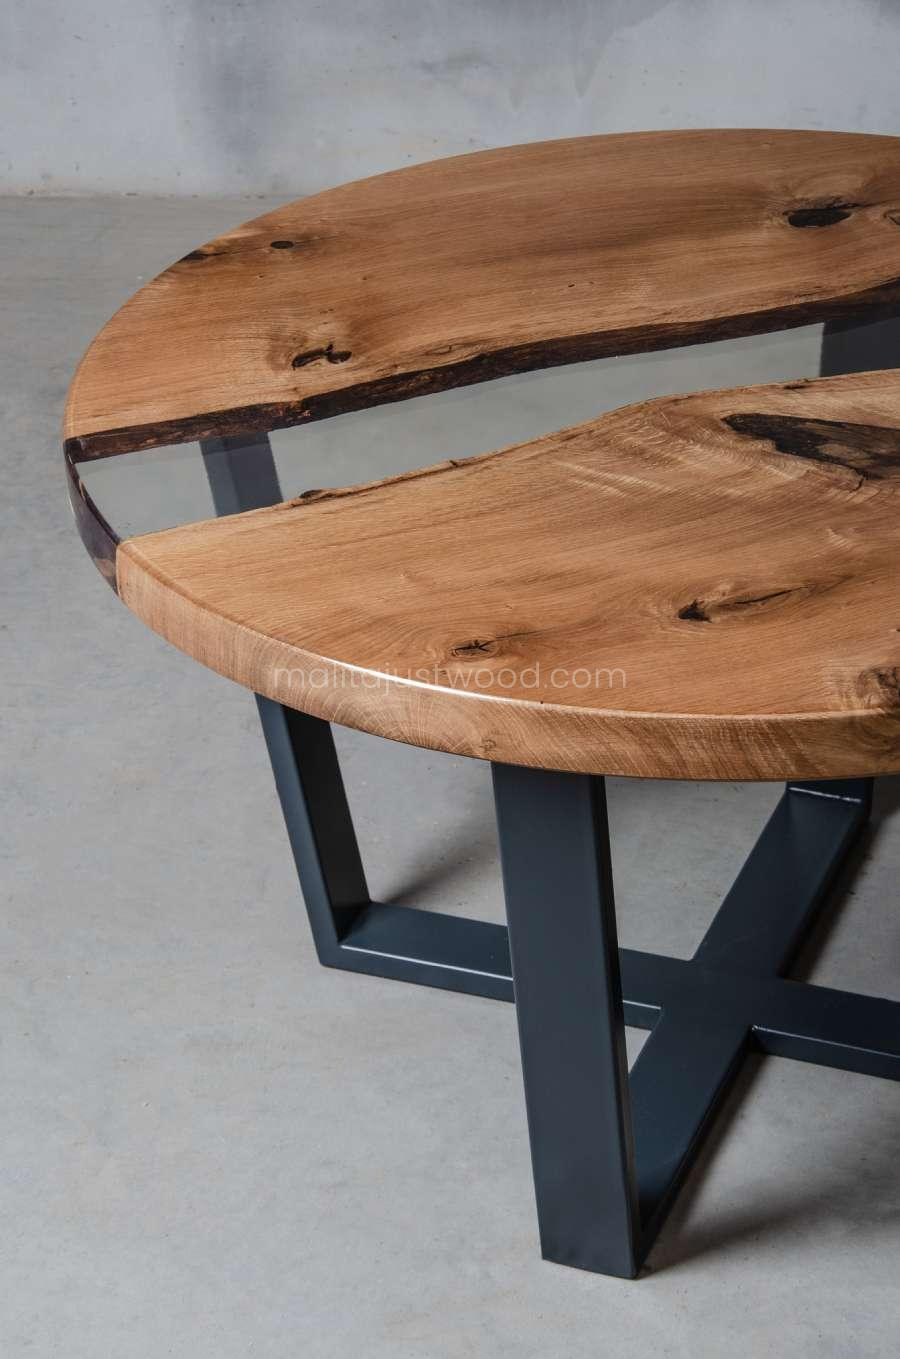 Puella river oak coffee table with colorless resin